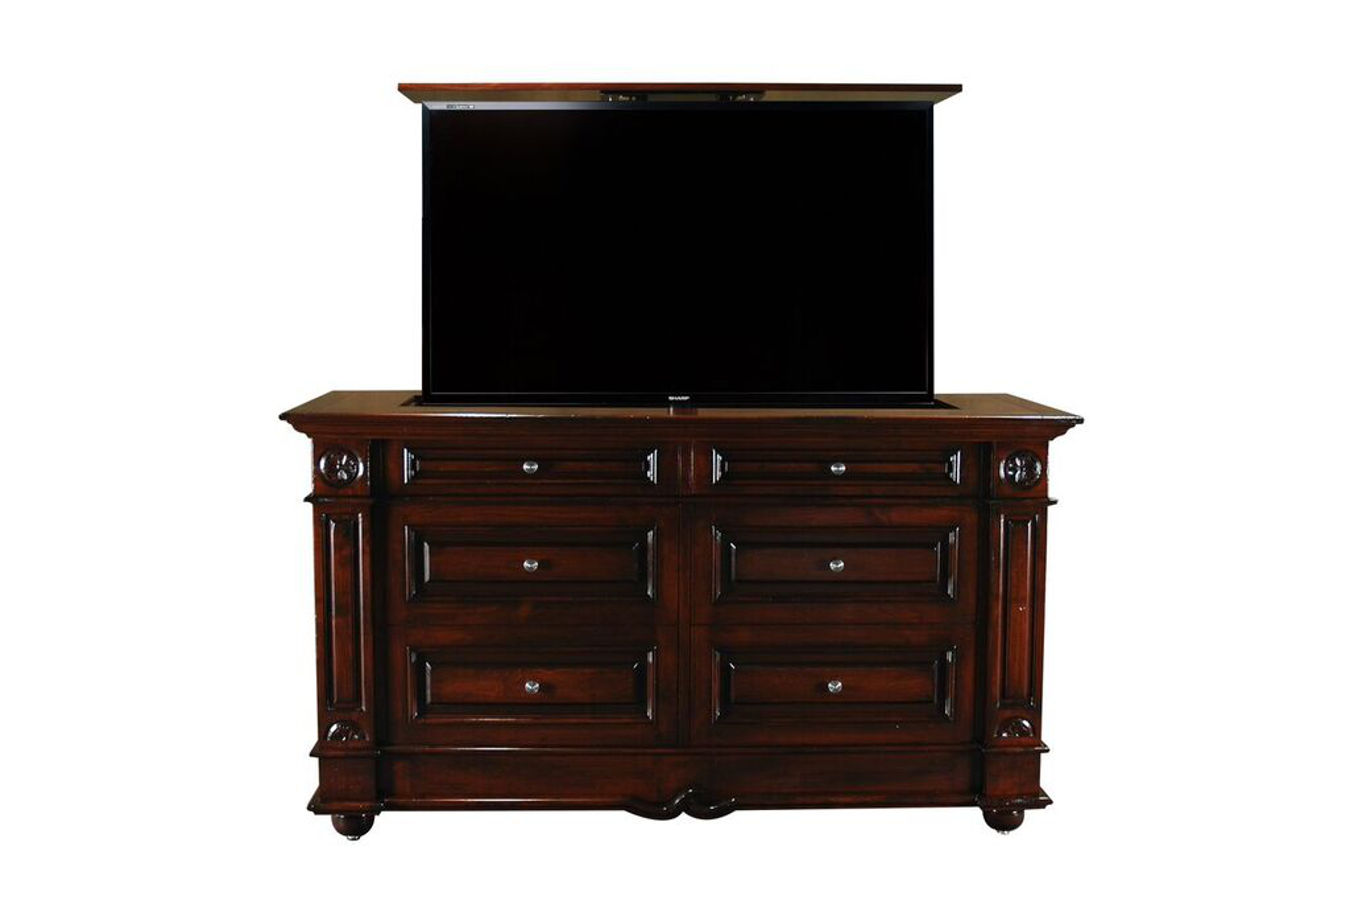 and also stunning tall ikea images including dresser modern for fabulous tv master dressers handmade flat stands screens small attractive trends bedroom charming with